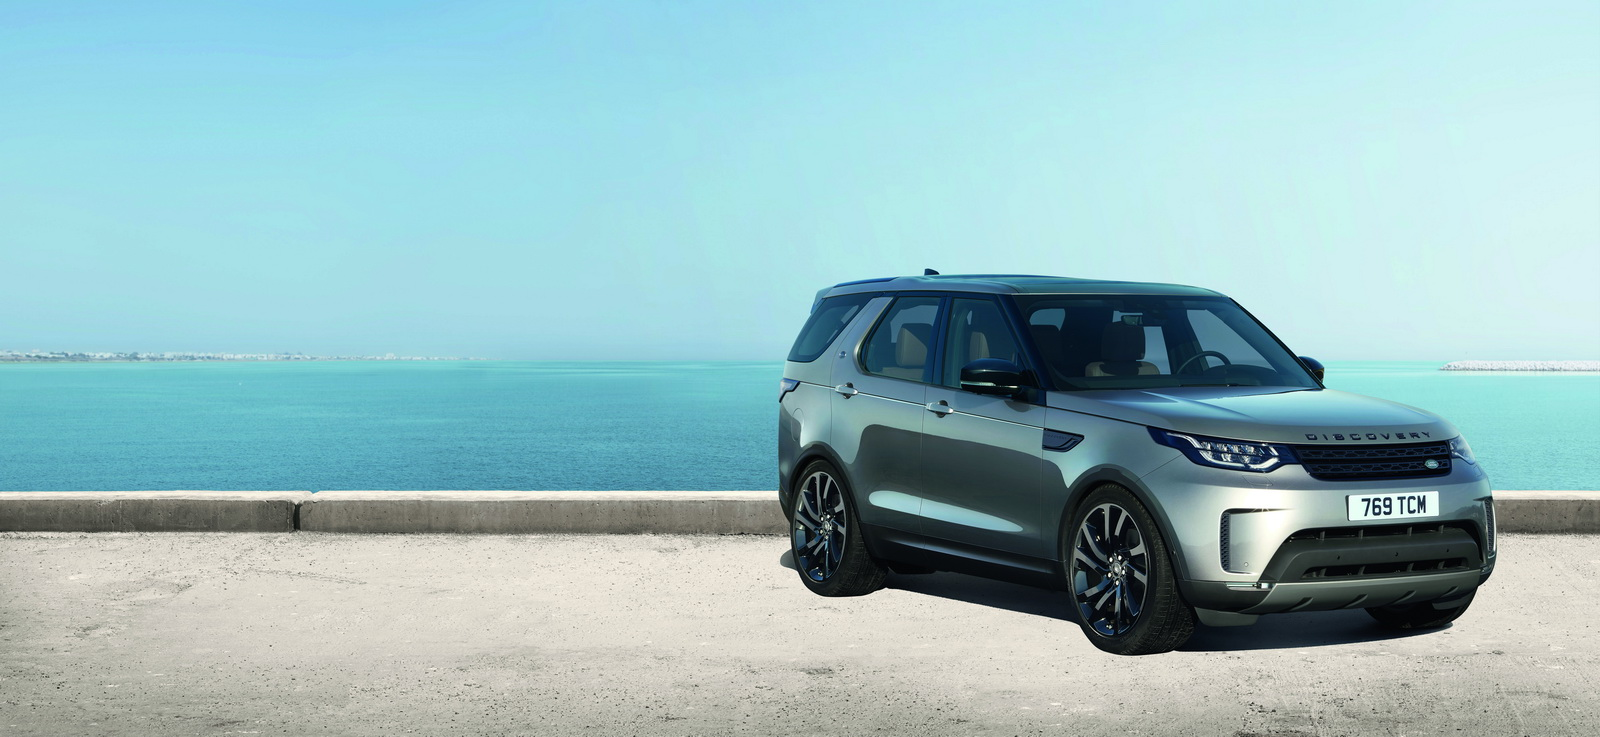 Land Rover Discovery 2017 113